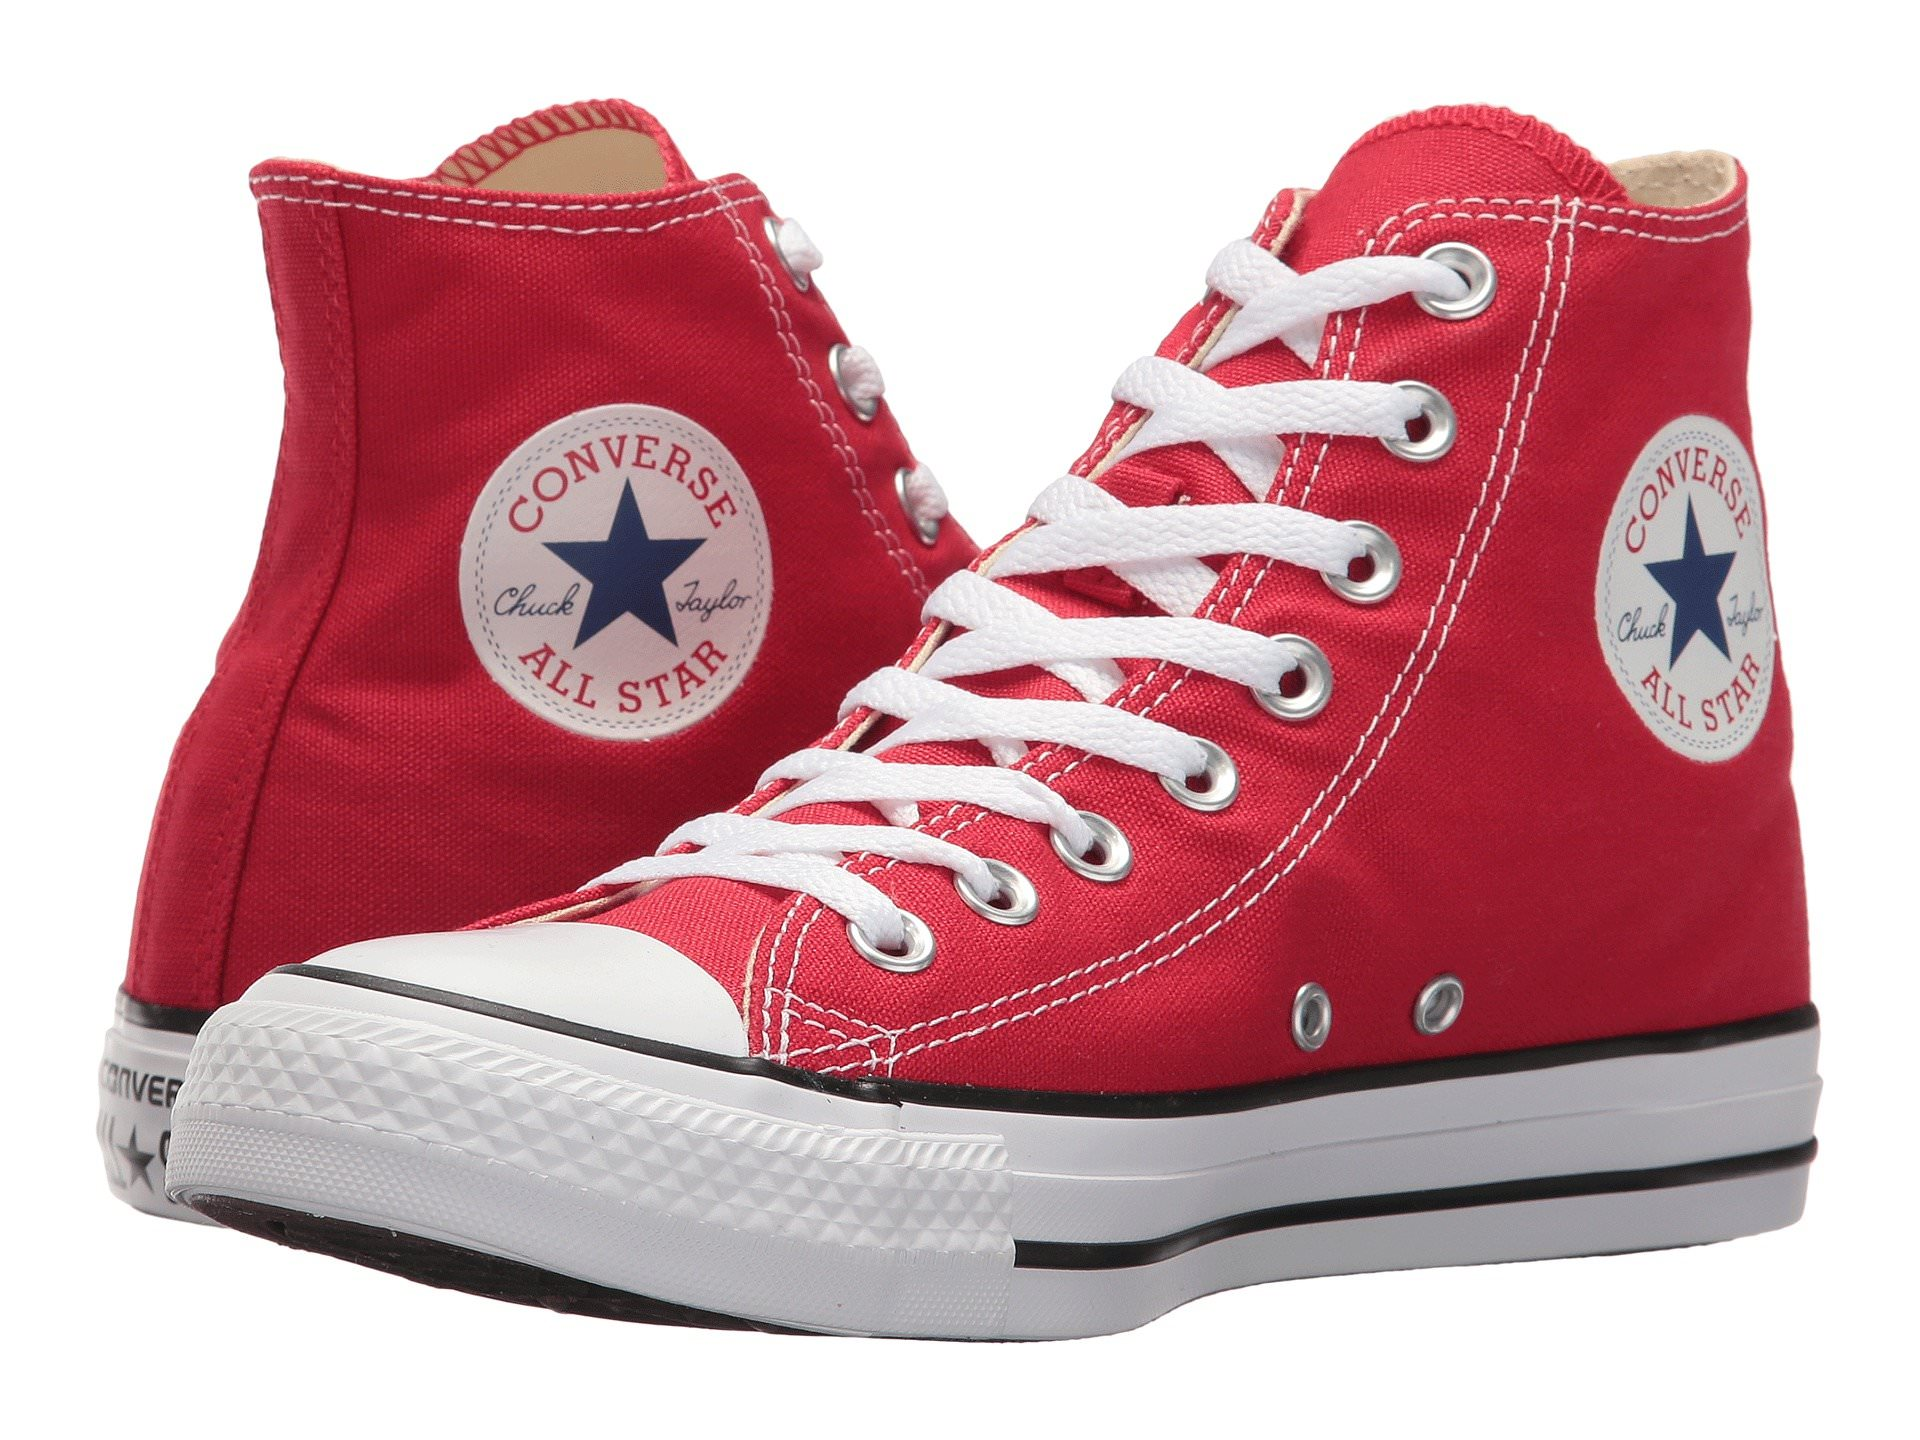 f8dfcf1c1898 Converse CHUCK TAYLOR ALL STAR Unisex Red Canvas High Top Sneaker ...